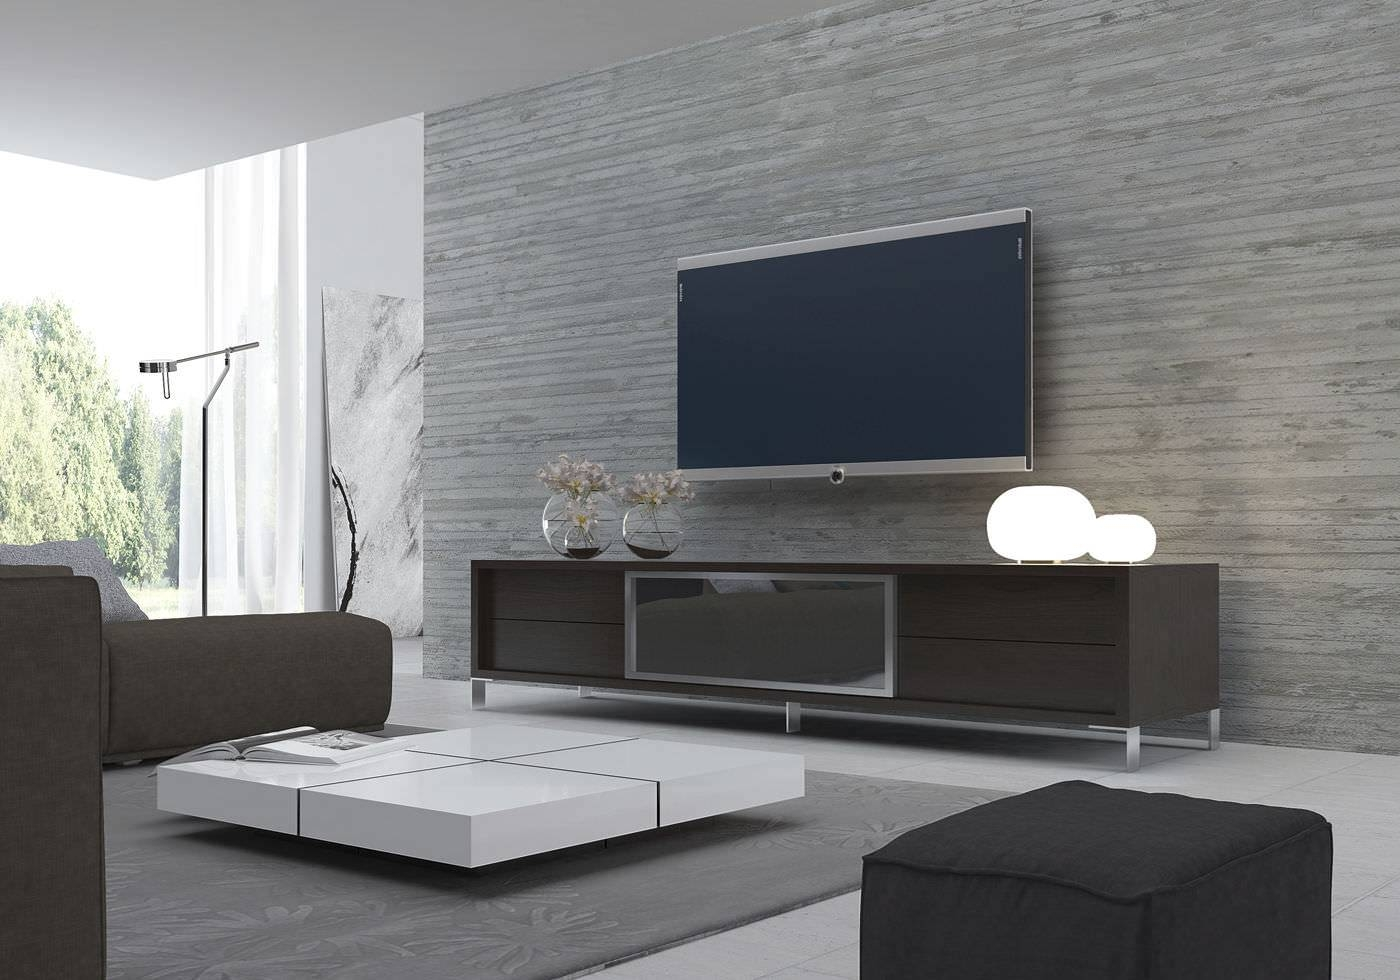 Contemporary Tv Cabinet / Wooden - Lexington - Modloft regarding Modern Tv Cabinets (Image 9 of 15)